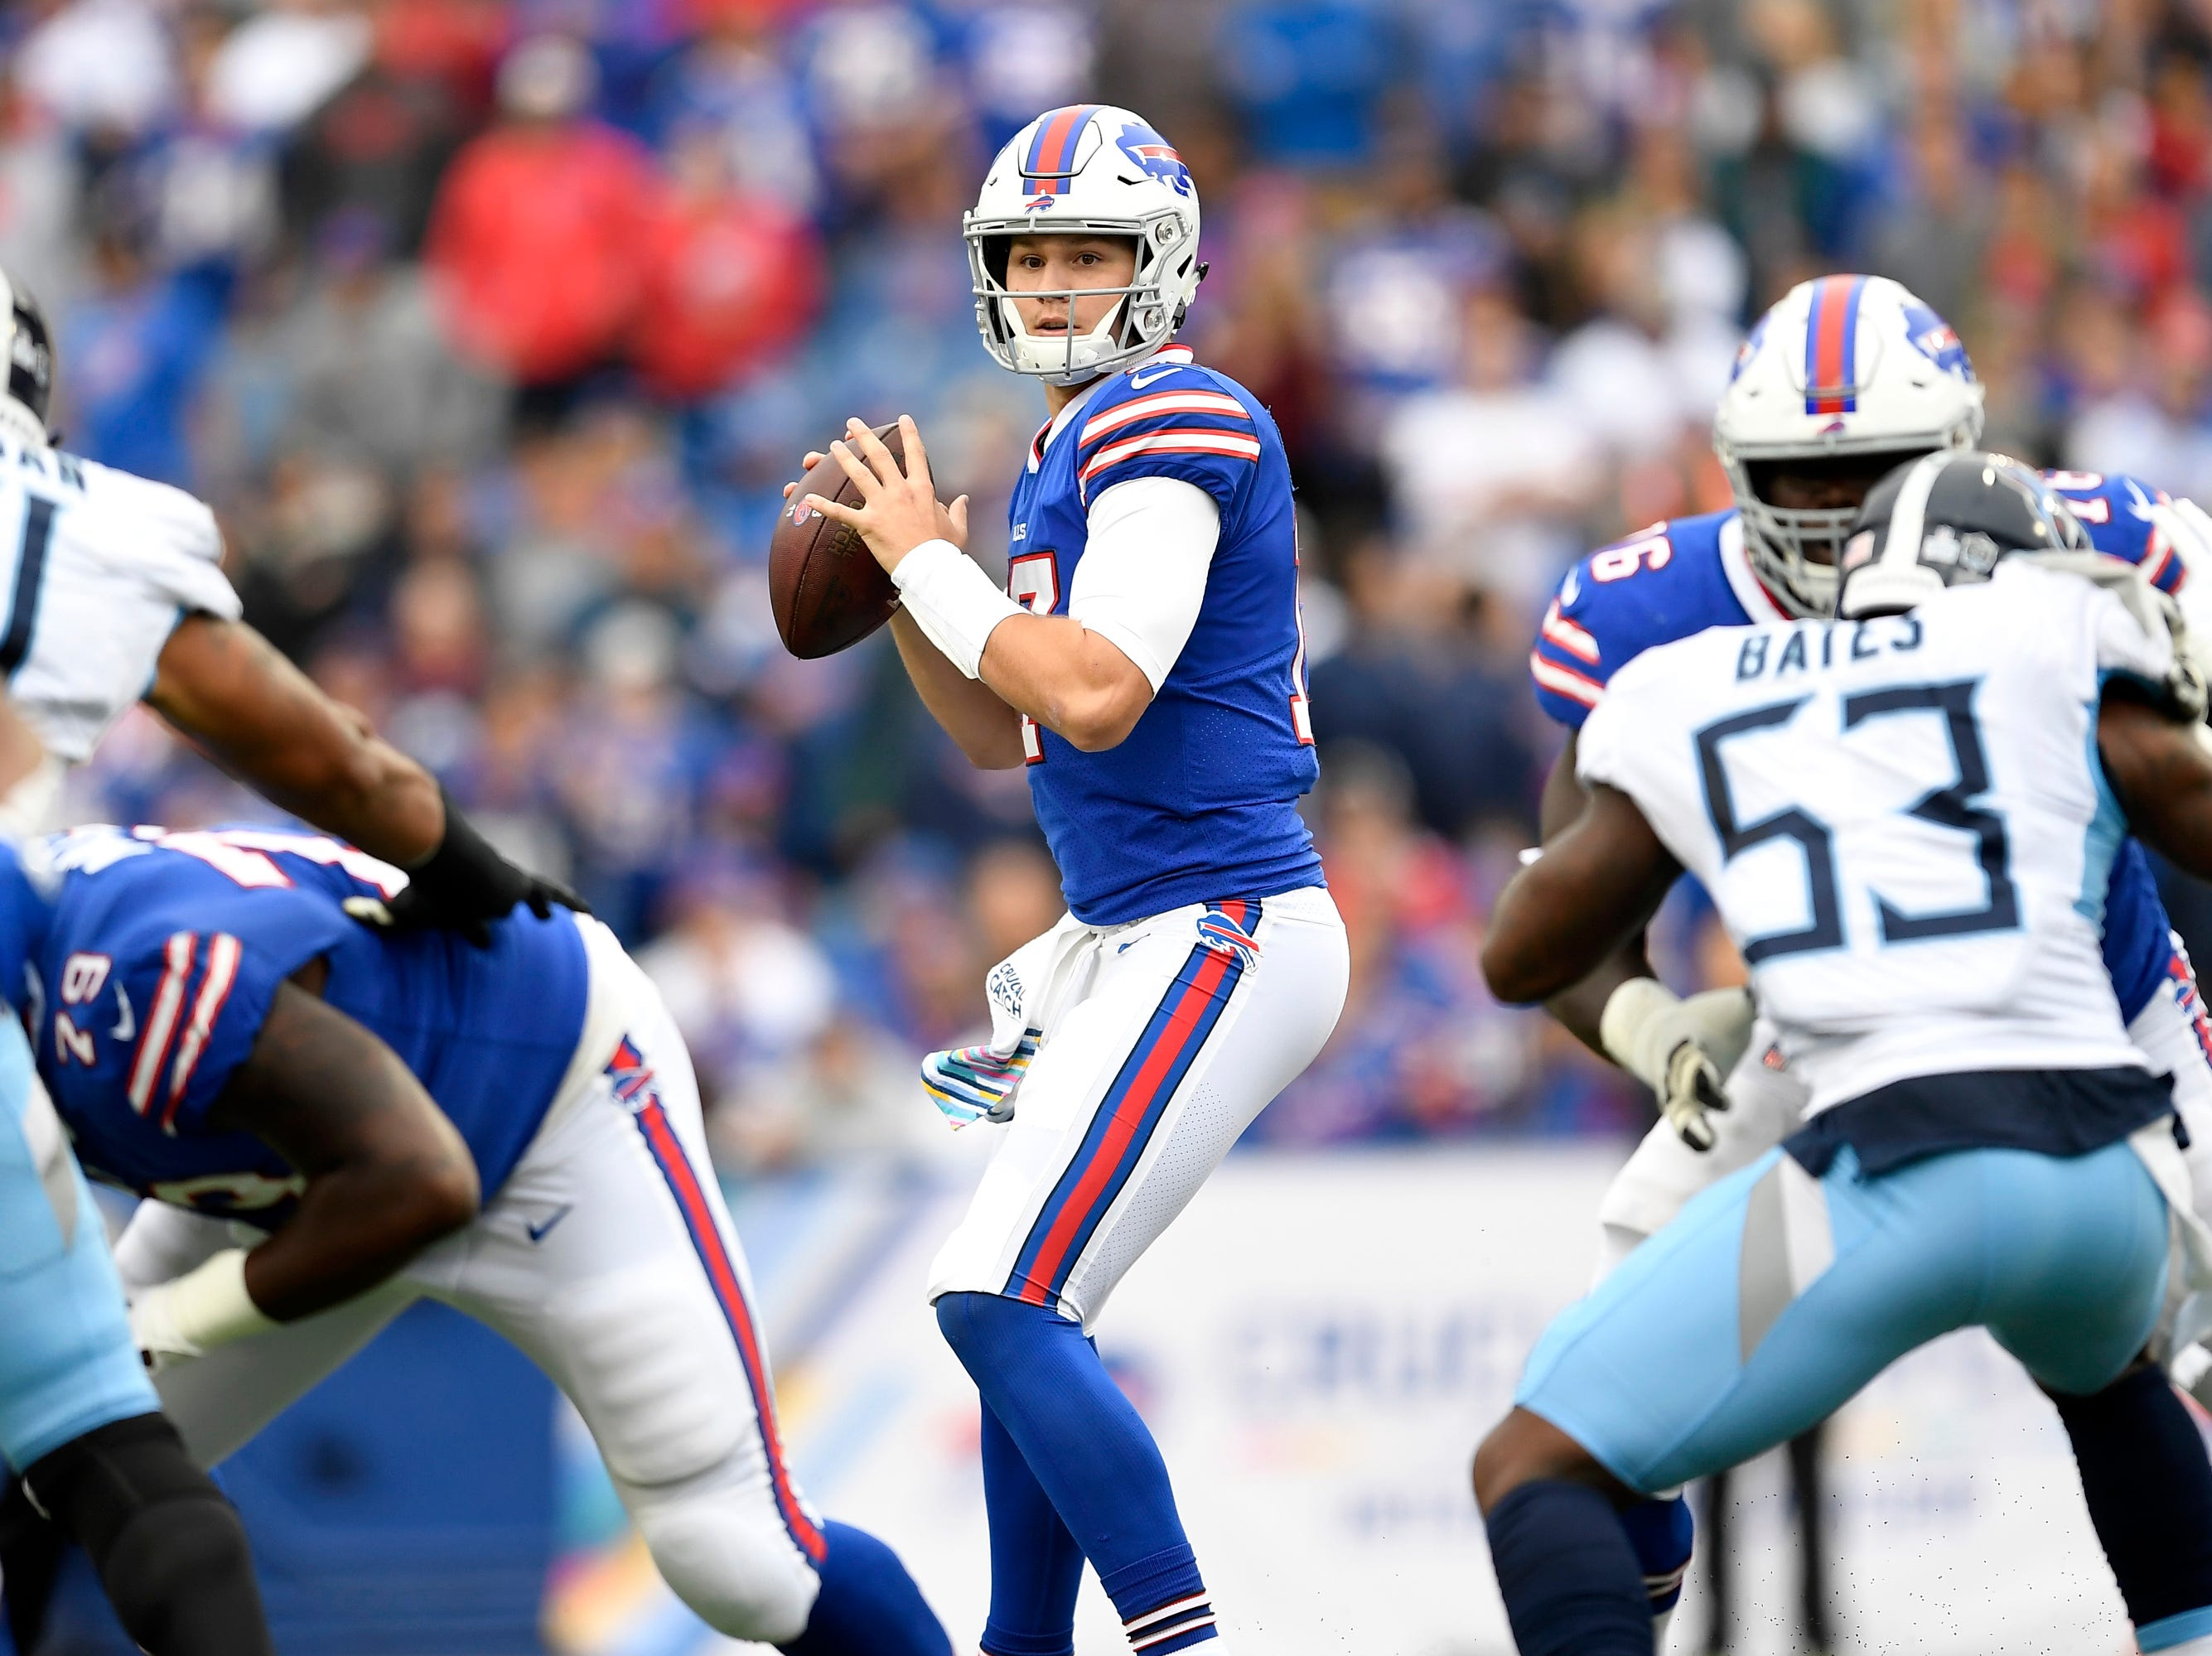 Buffalo Bills quarterback Josh Allen looks to pass against the Tennessee Titans during the first half of an NFL football game, Sunday, Oct. 7, 2018, in Orchard Park, N.Y.